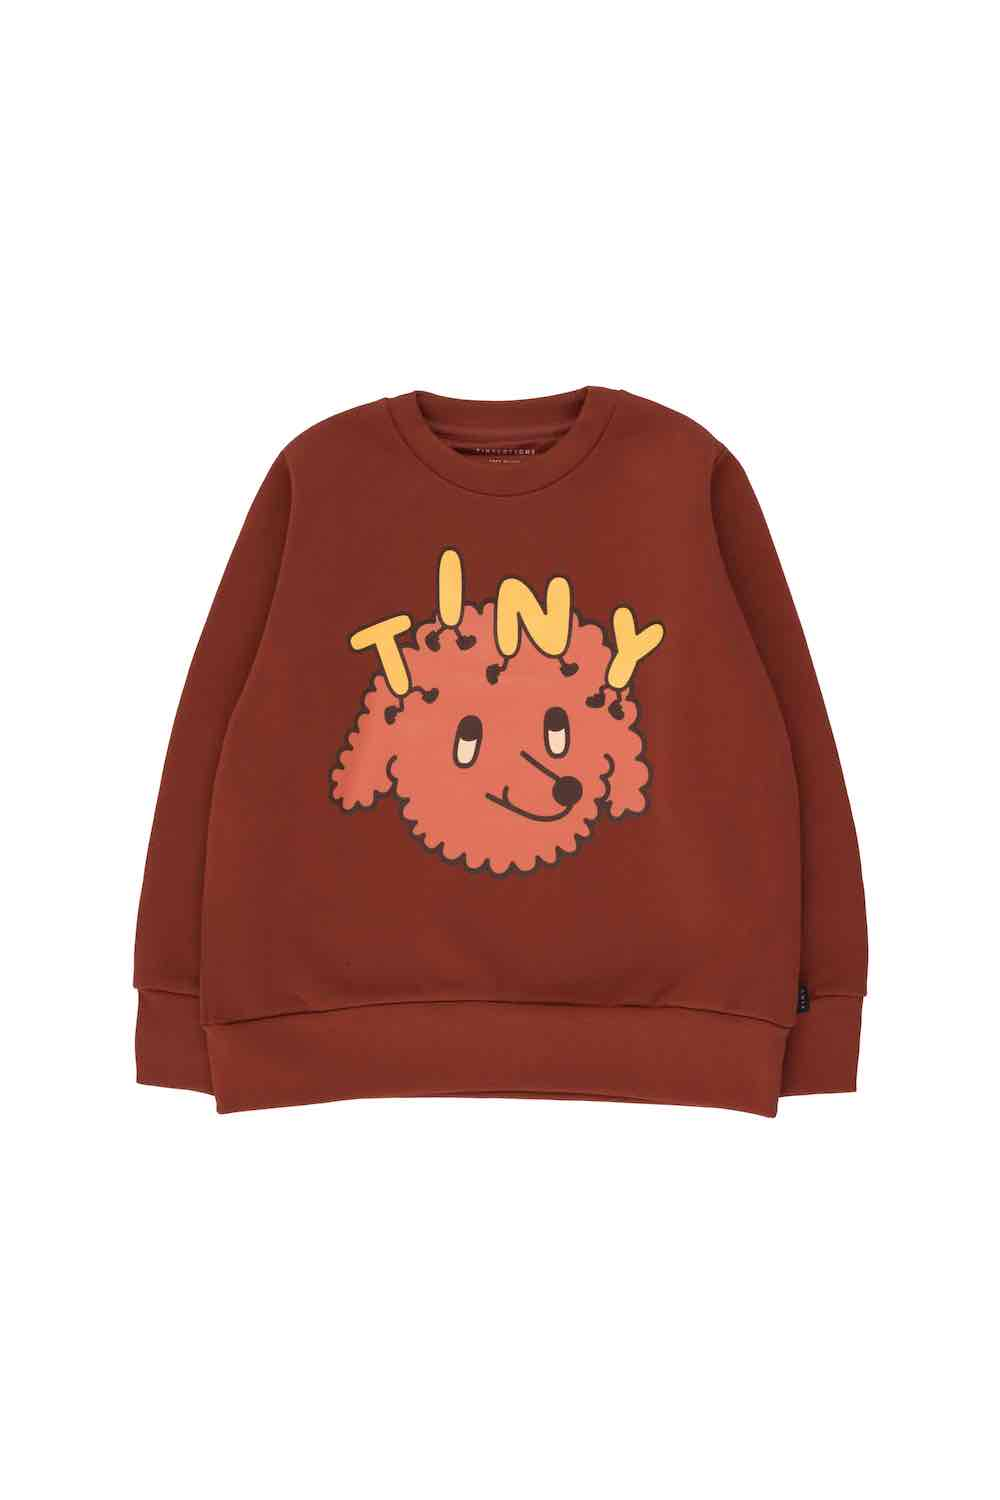 Tiny Cottons Tiny Dog Sweatshirt - Dark Brown/Sienna